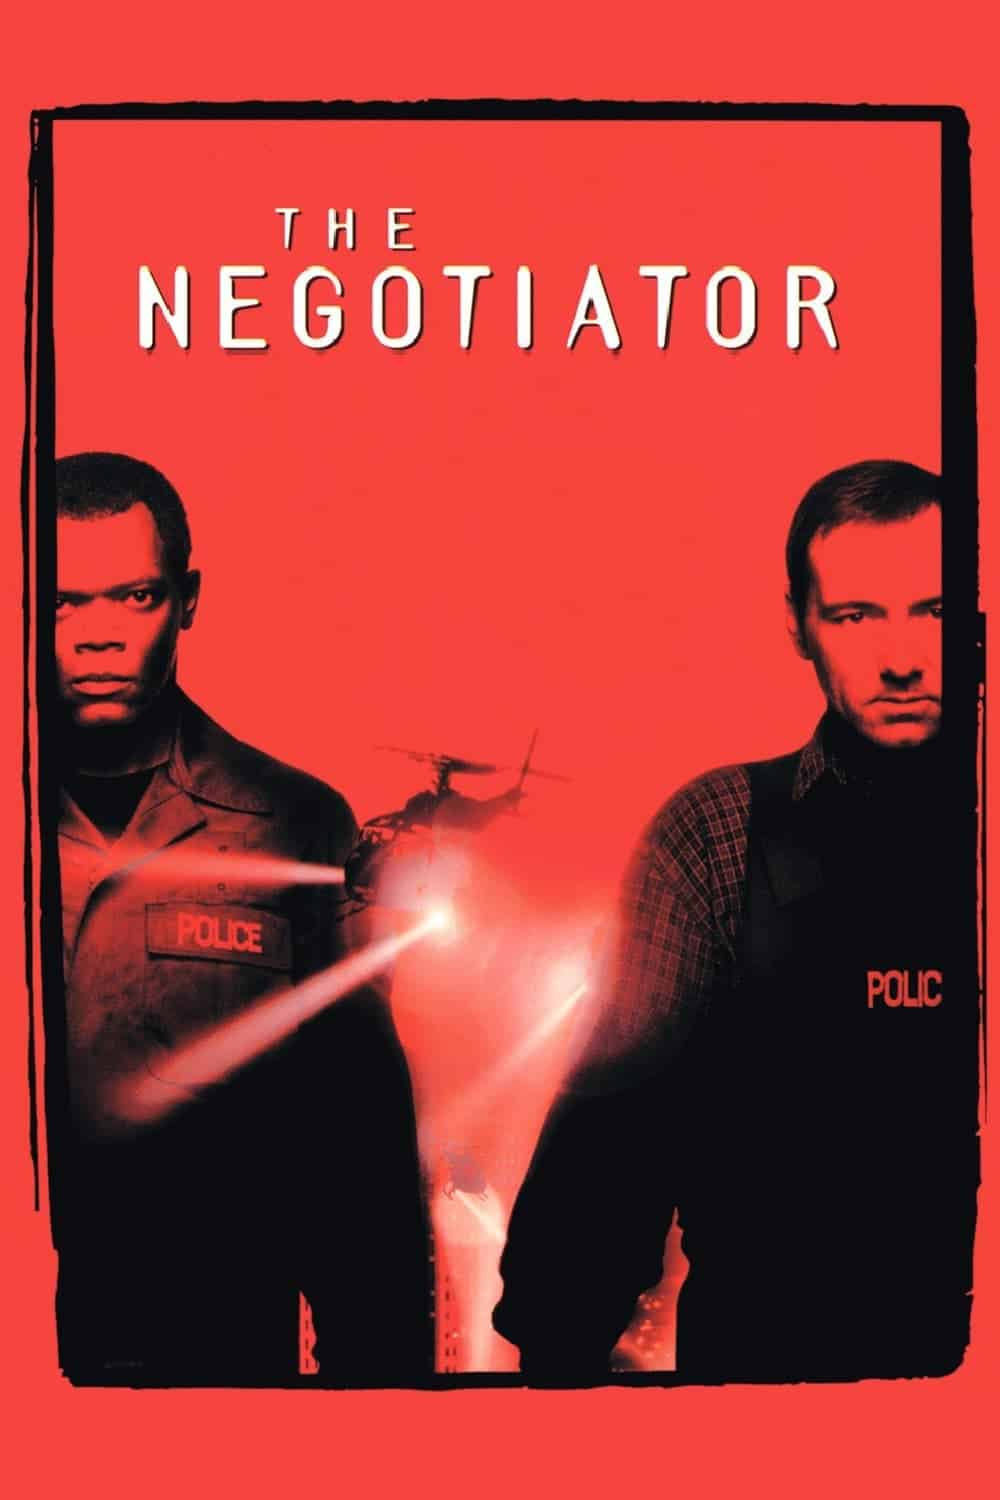 The Negotiator, 1998